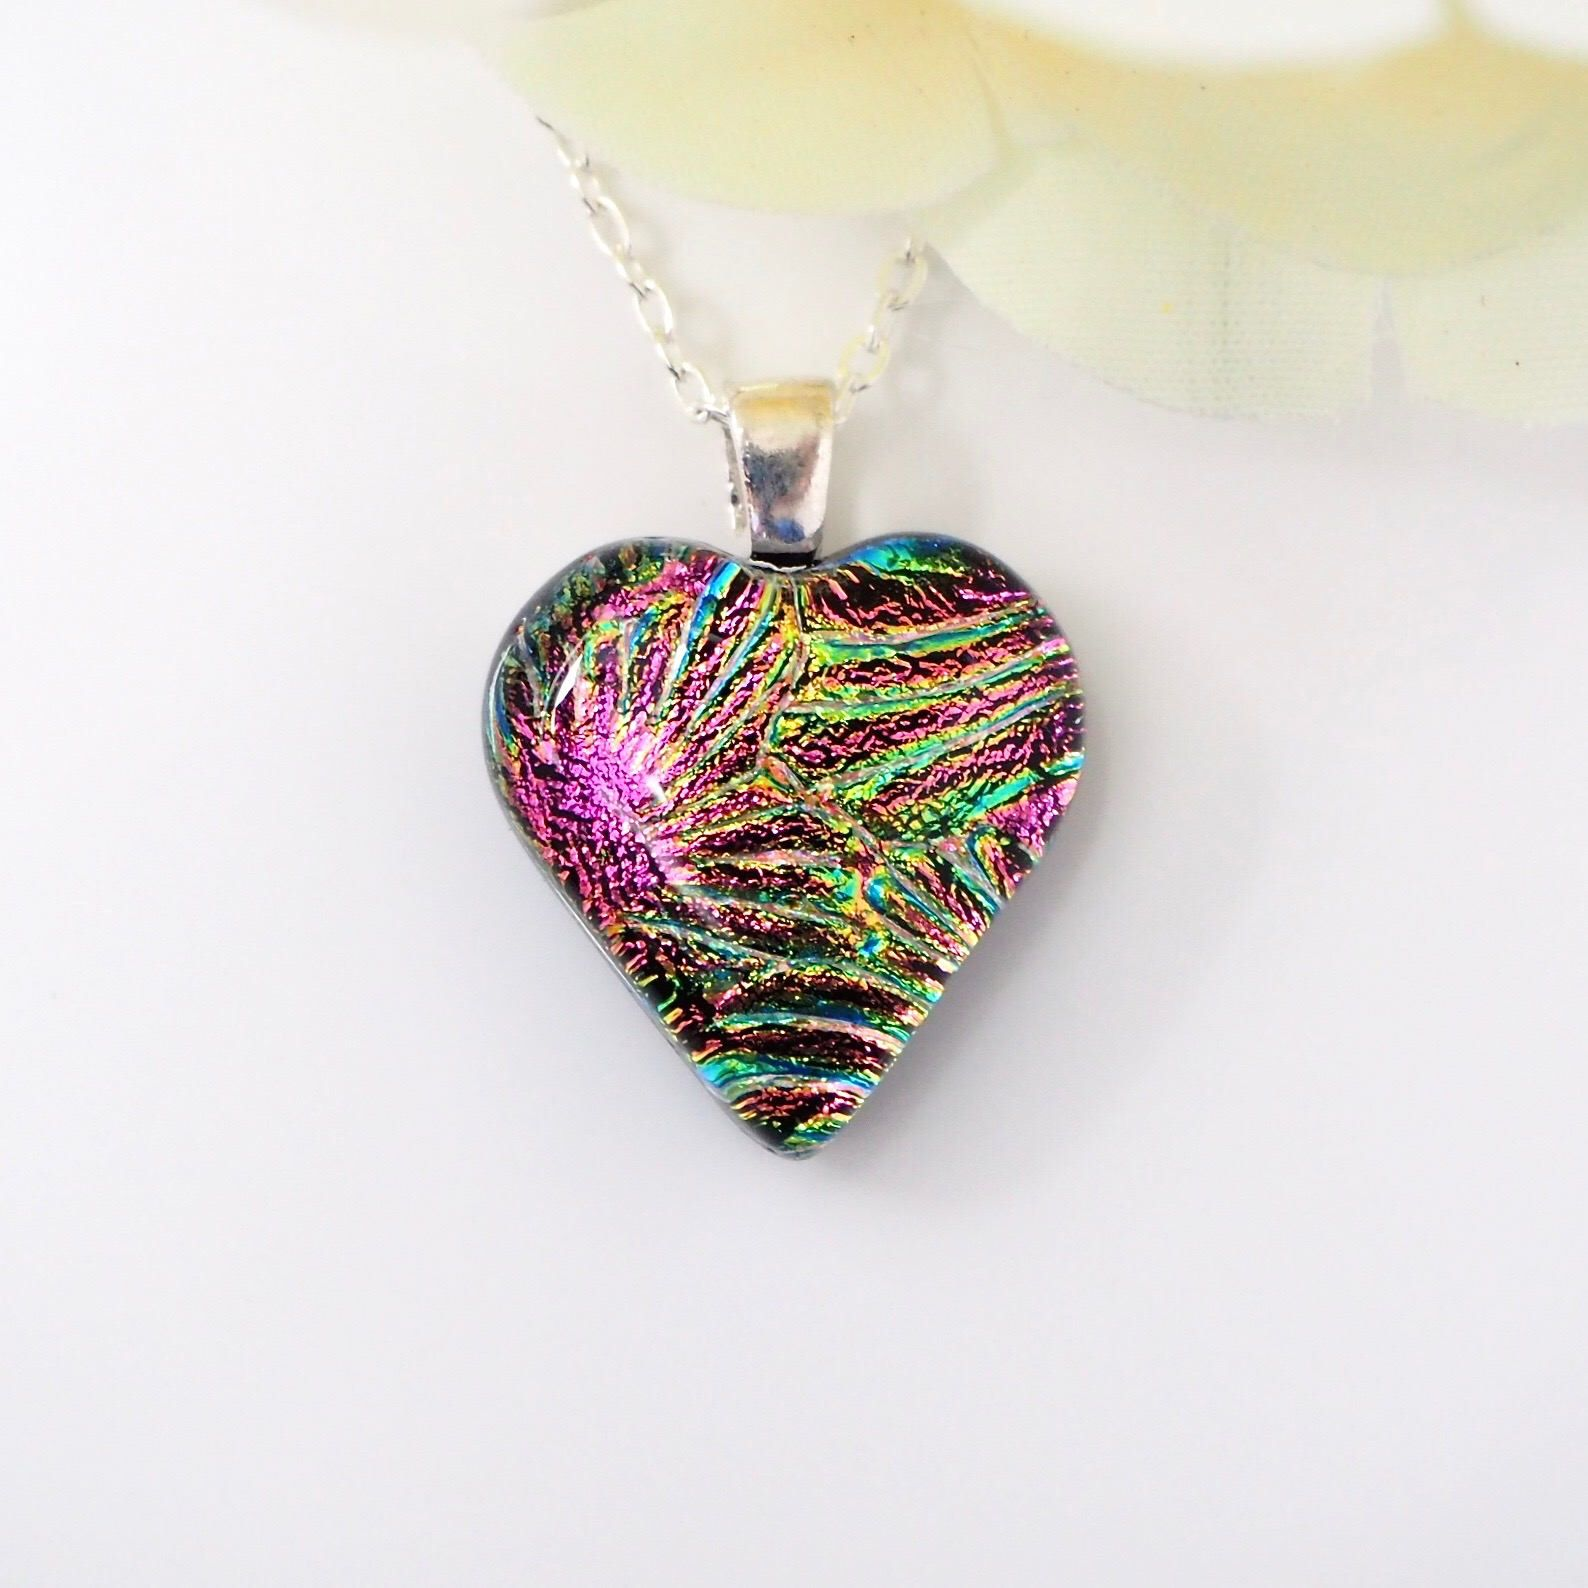 dichroic glass necklace dichroic necklace fused glass pendant Green and gold heart dichroic glass pendant fused glass green dichroic,